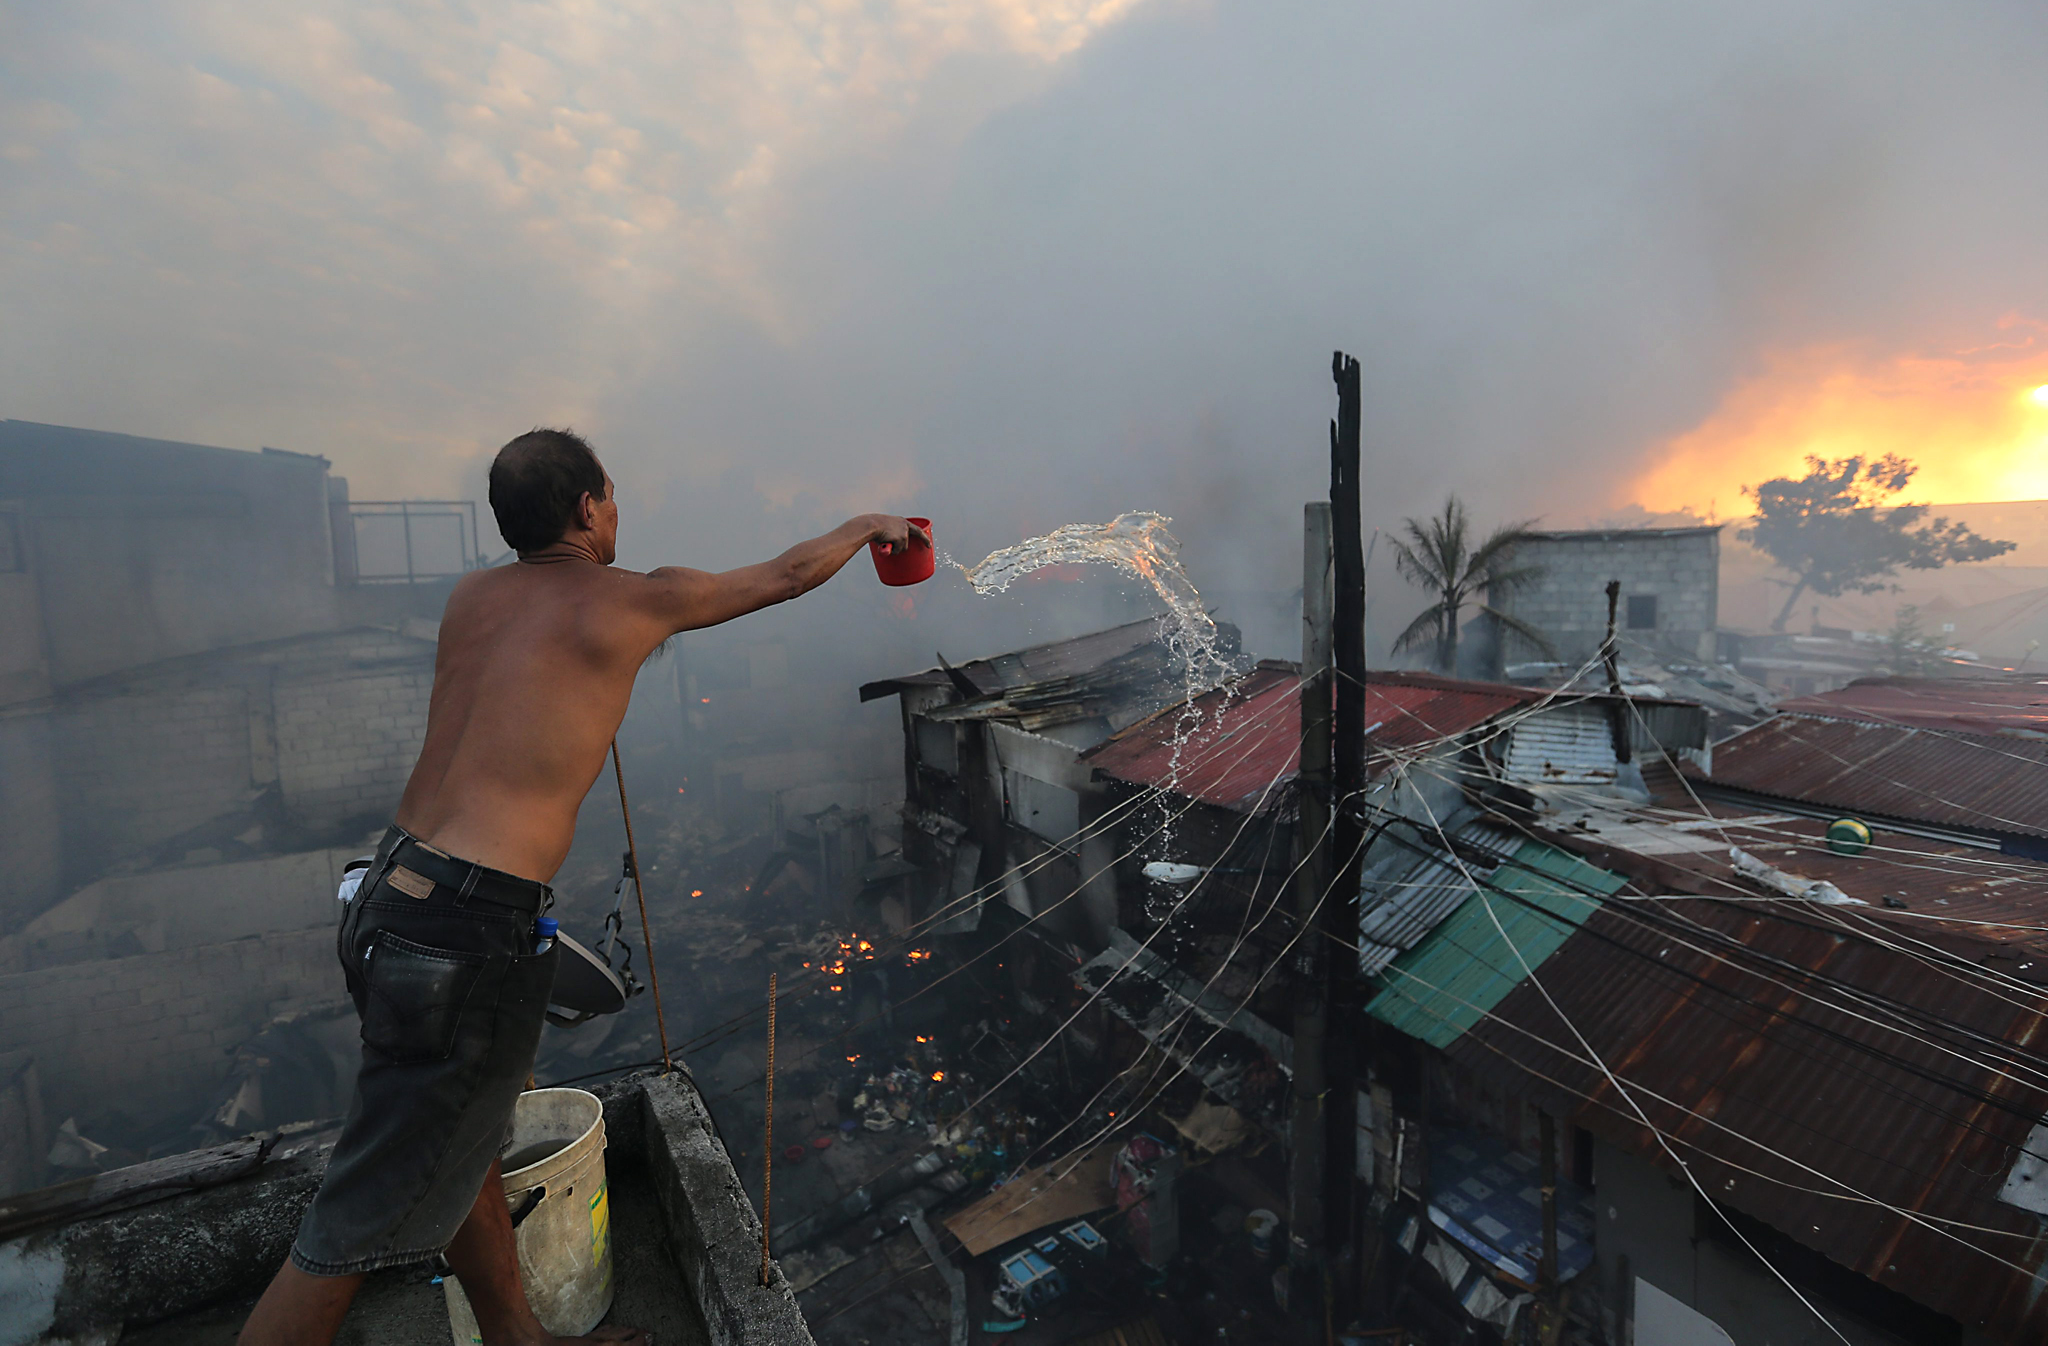 Fire razes homes in Mandaluyong, Manila...epa05040806 Filipino, Fil Binay (L) battles to contain a fire in Mandaluyong City, east of Manila, Philippines, 25 November 2015. The cause of the fire which reached the general alarm is still unknown.  EPA/MARK R. CRISTINO